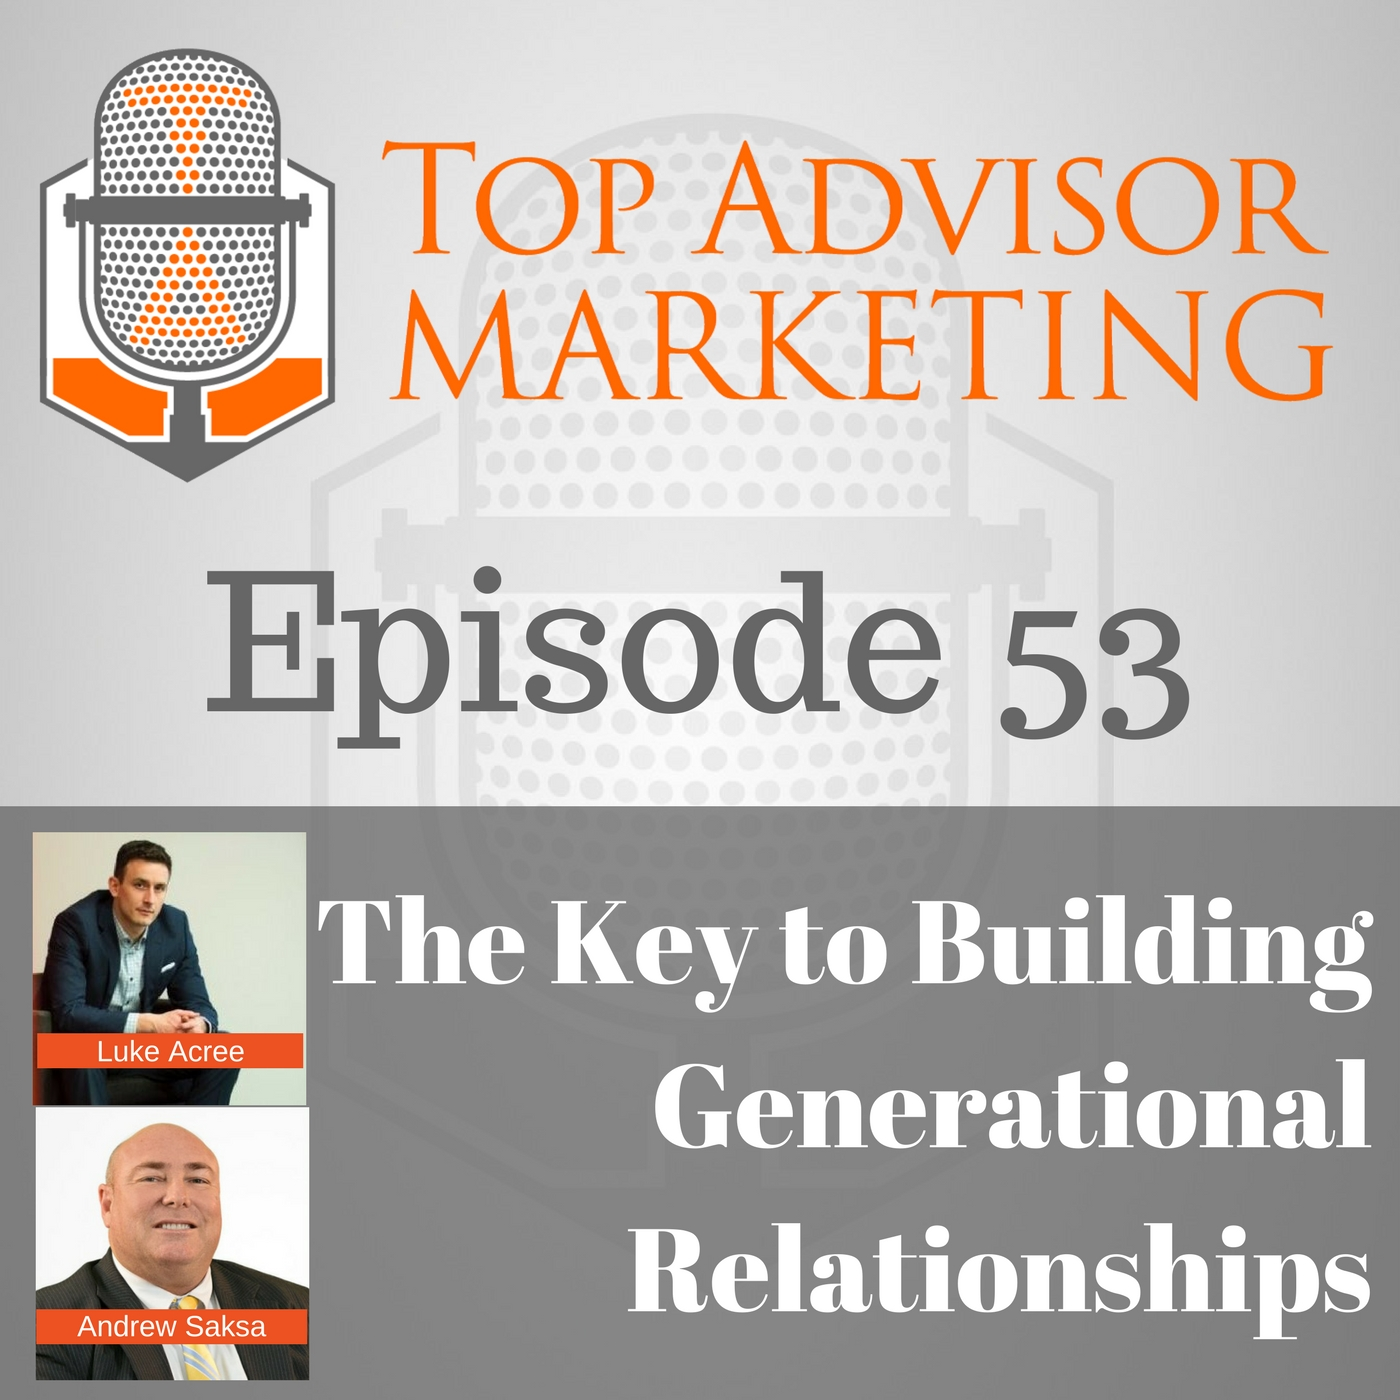 Building Generational Relationships for Financial Advisors